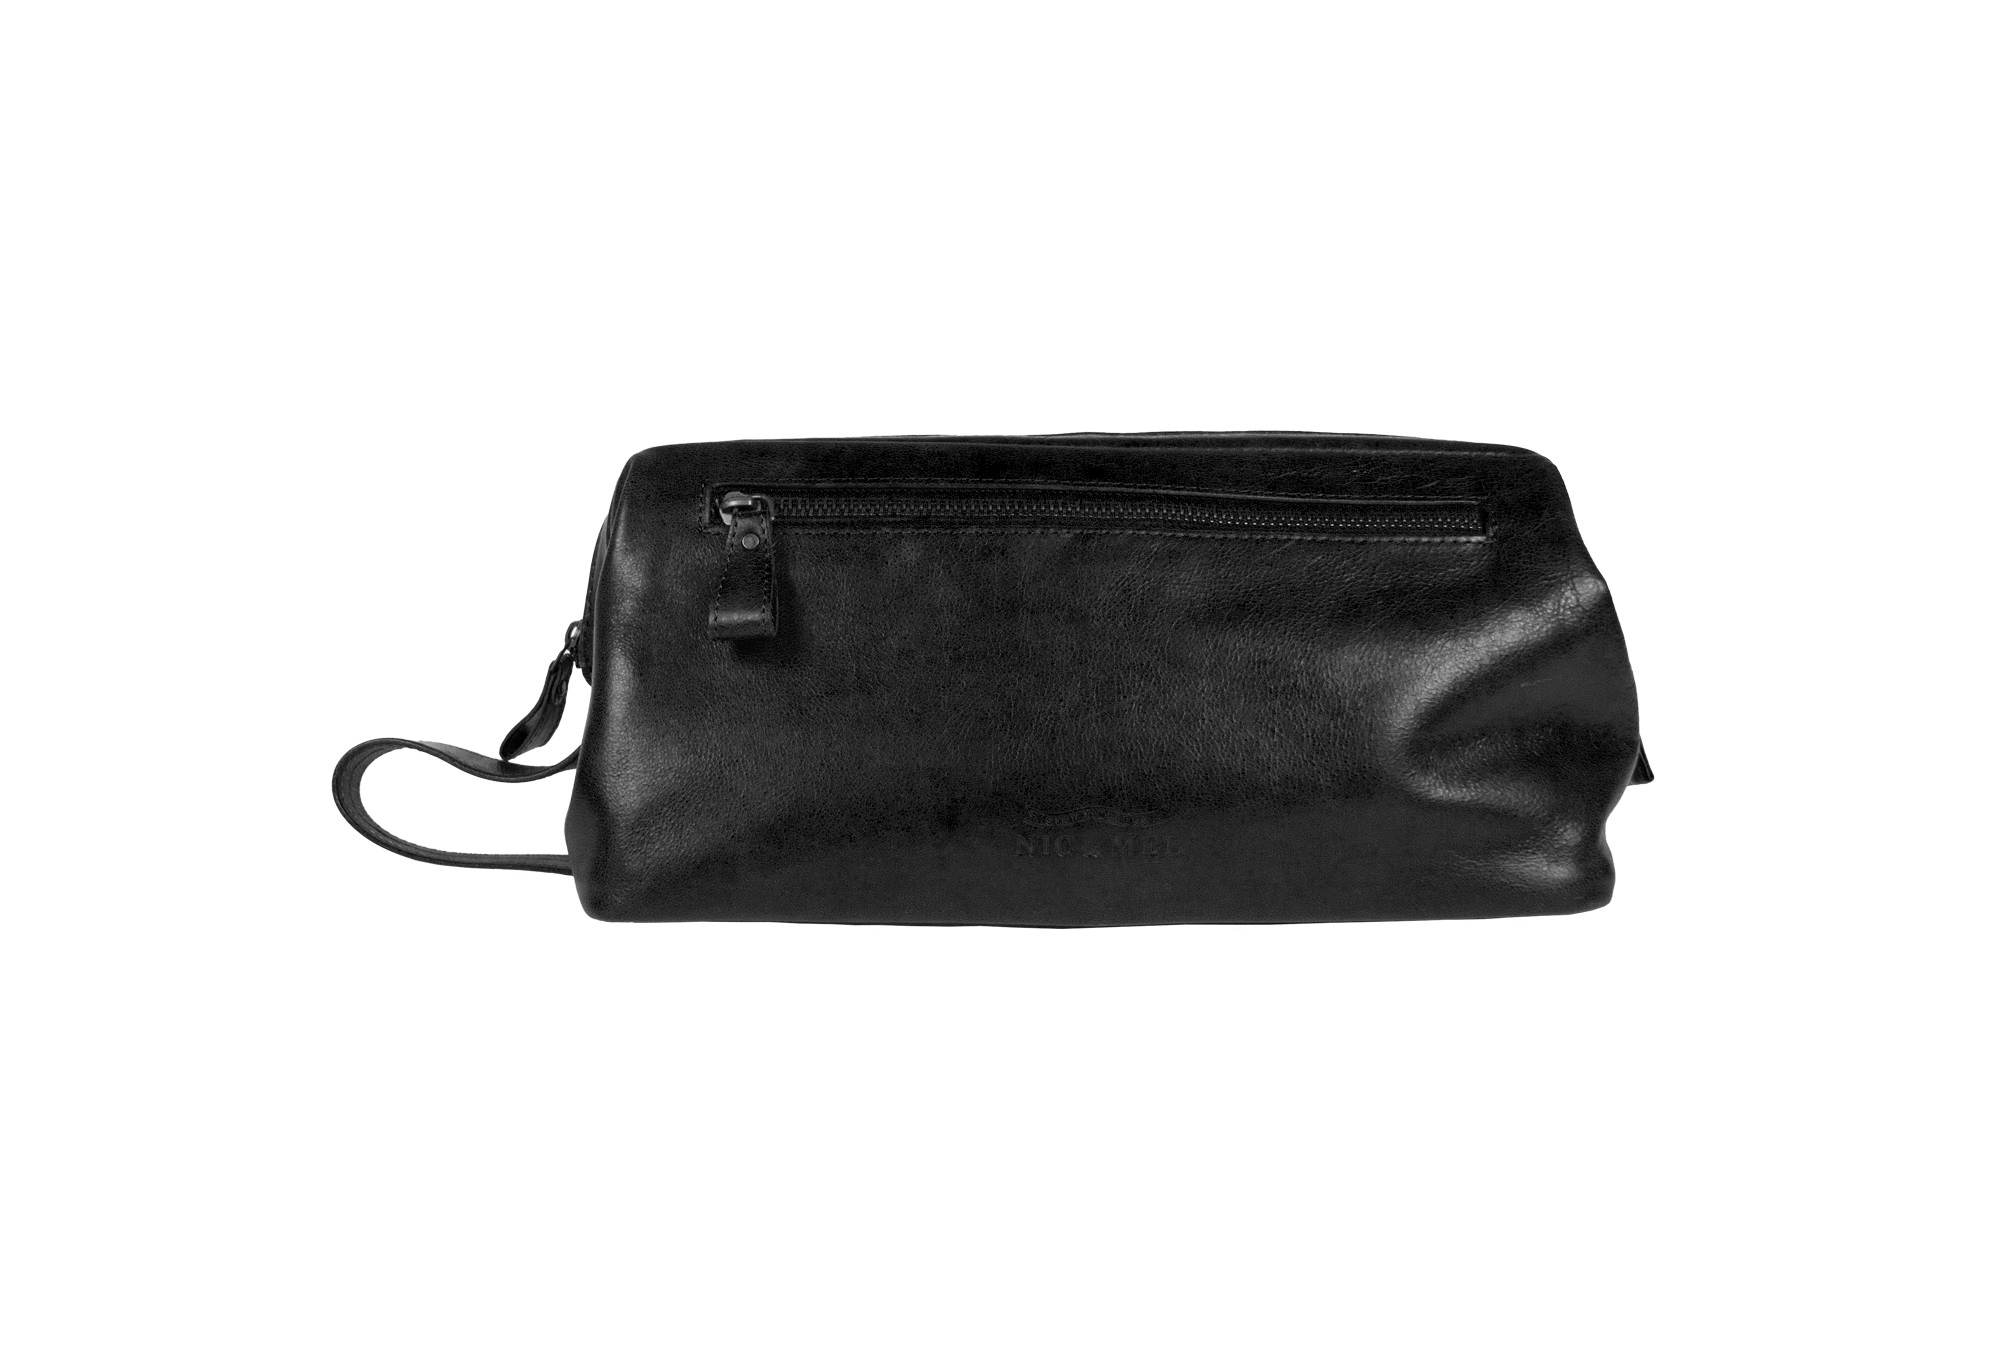 SEAN JUNIOR TOILETRY BAG <br>Black Leather